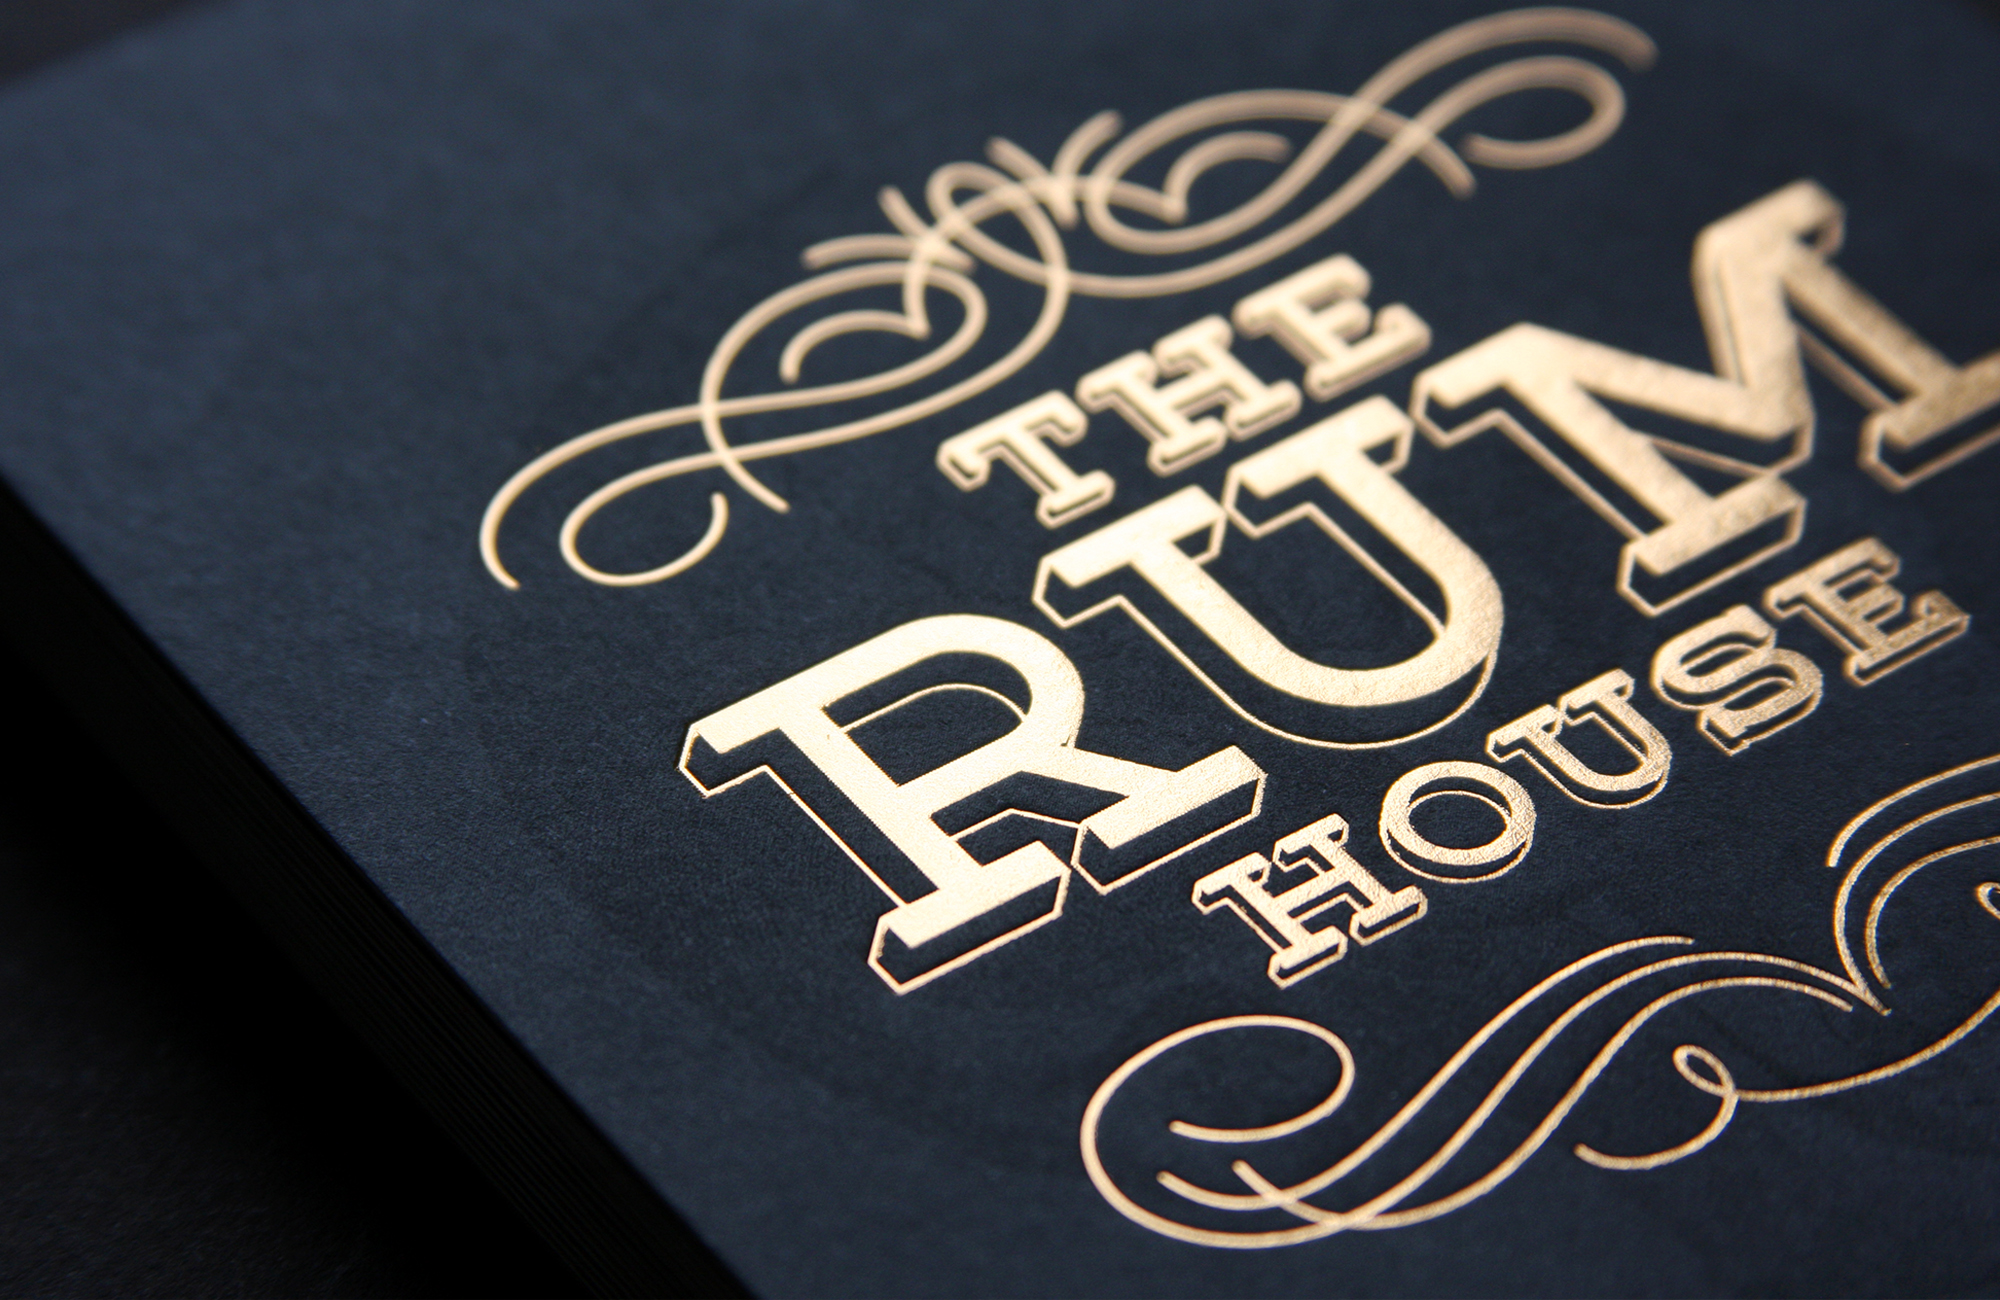 Cover image: The Rum House